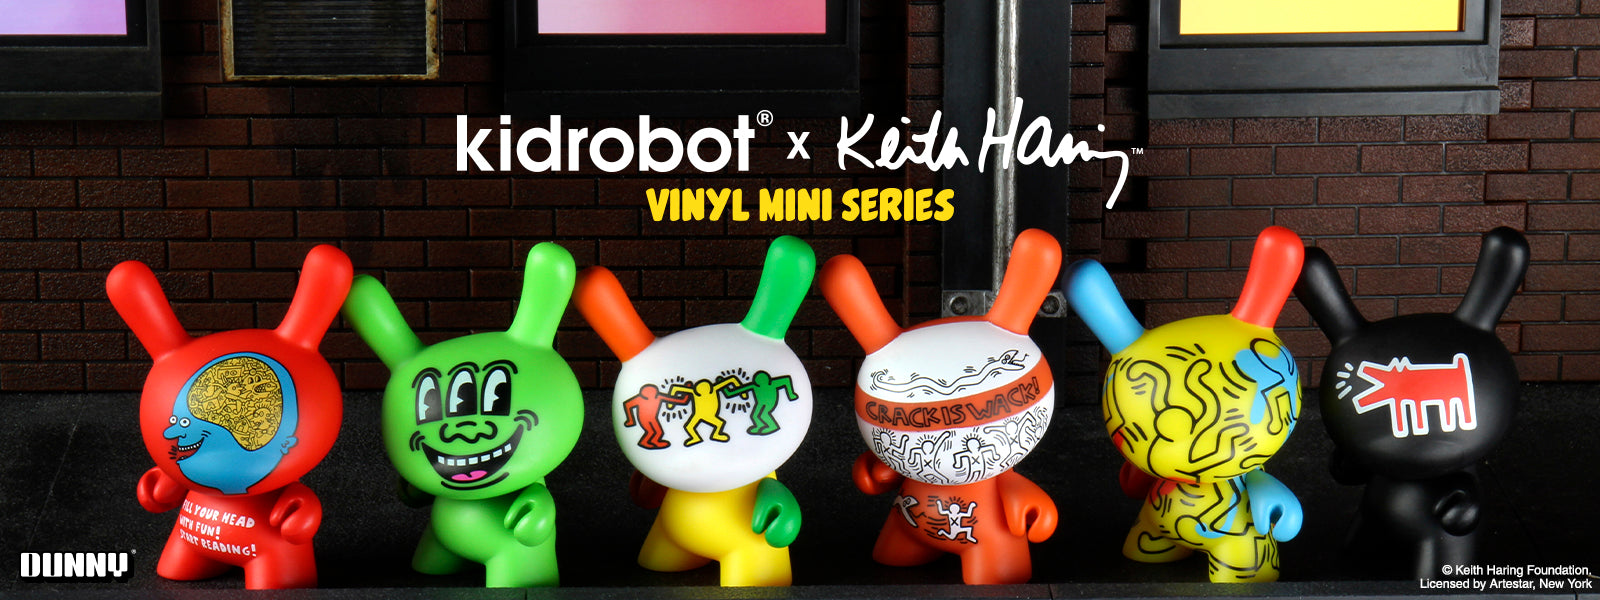 Kidrobot x Keith Haring Collectible Dunny Series - Kidrobot.com